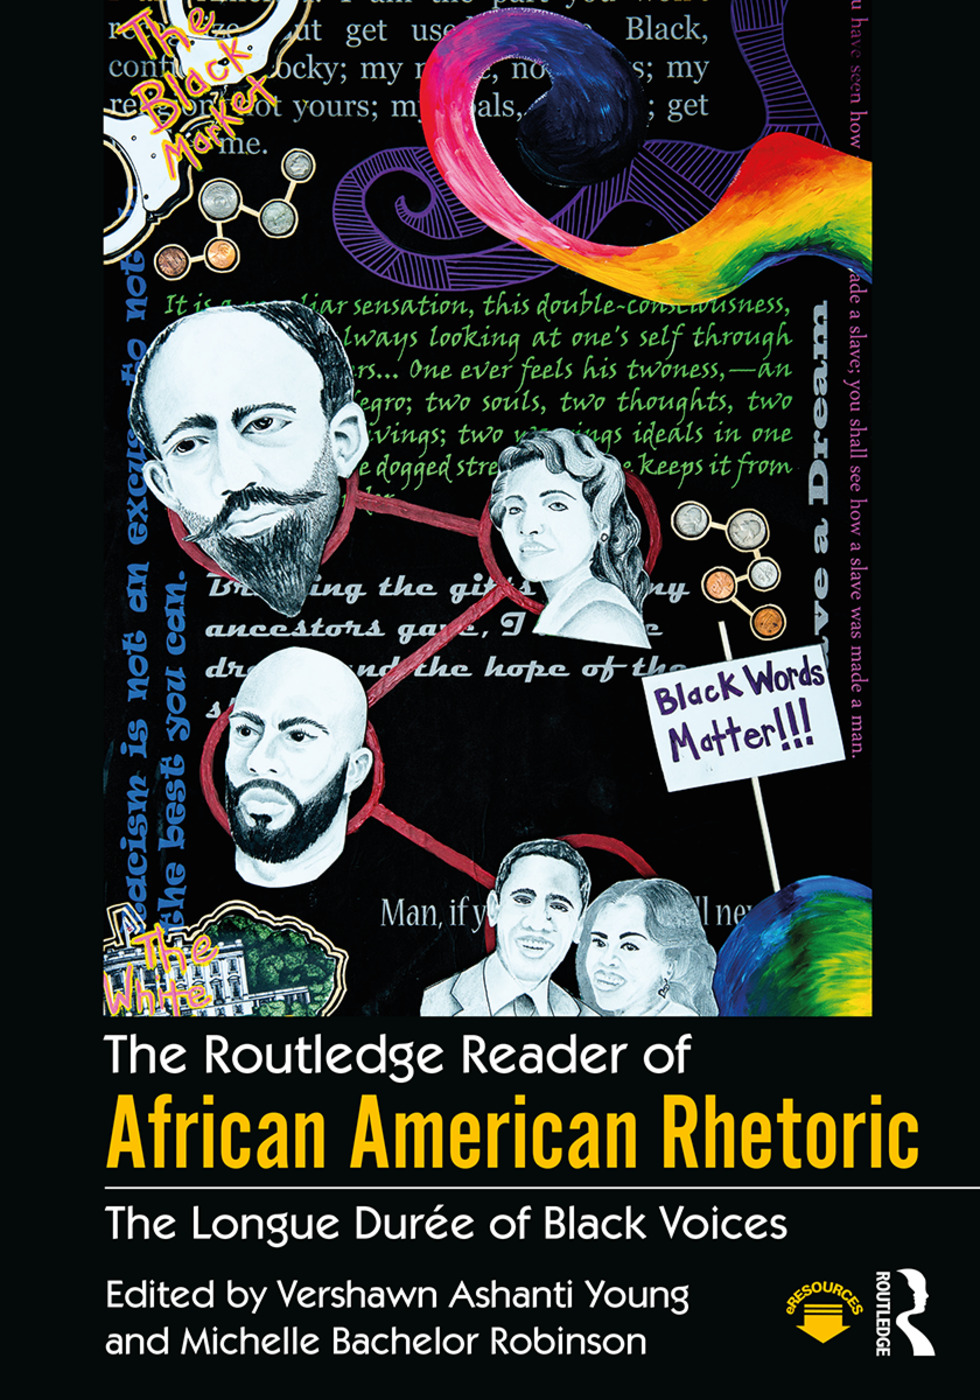 The Routledge Reader of African American Rhetoric: The Longue Duree of Black Voices book cover